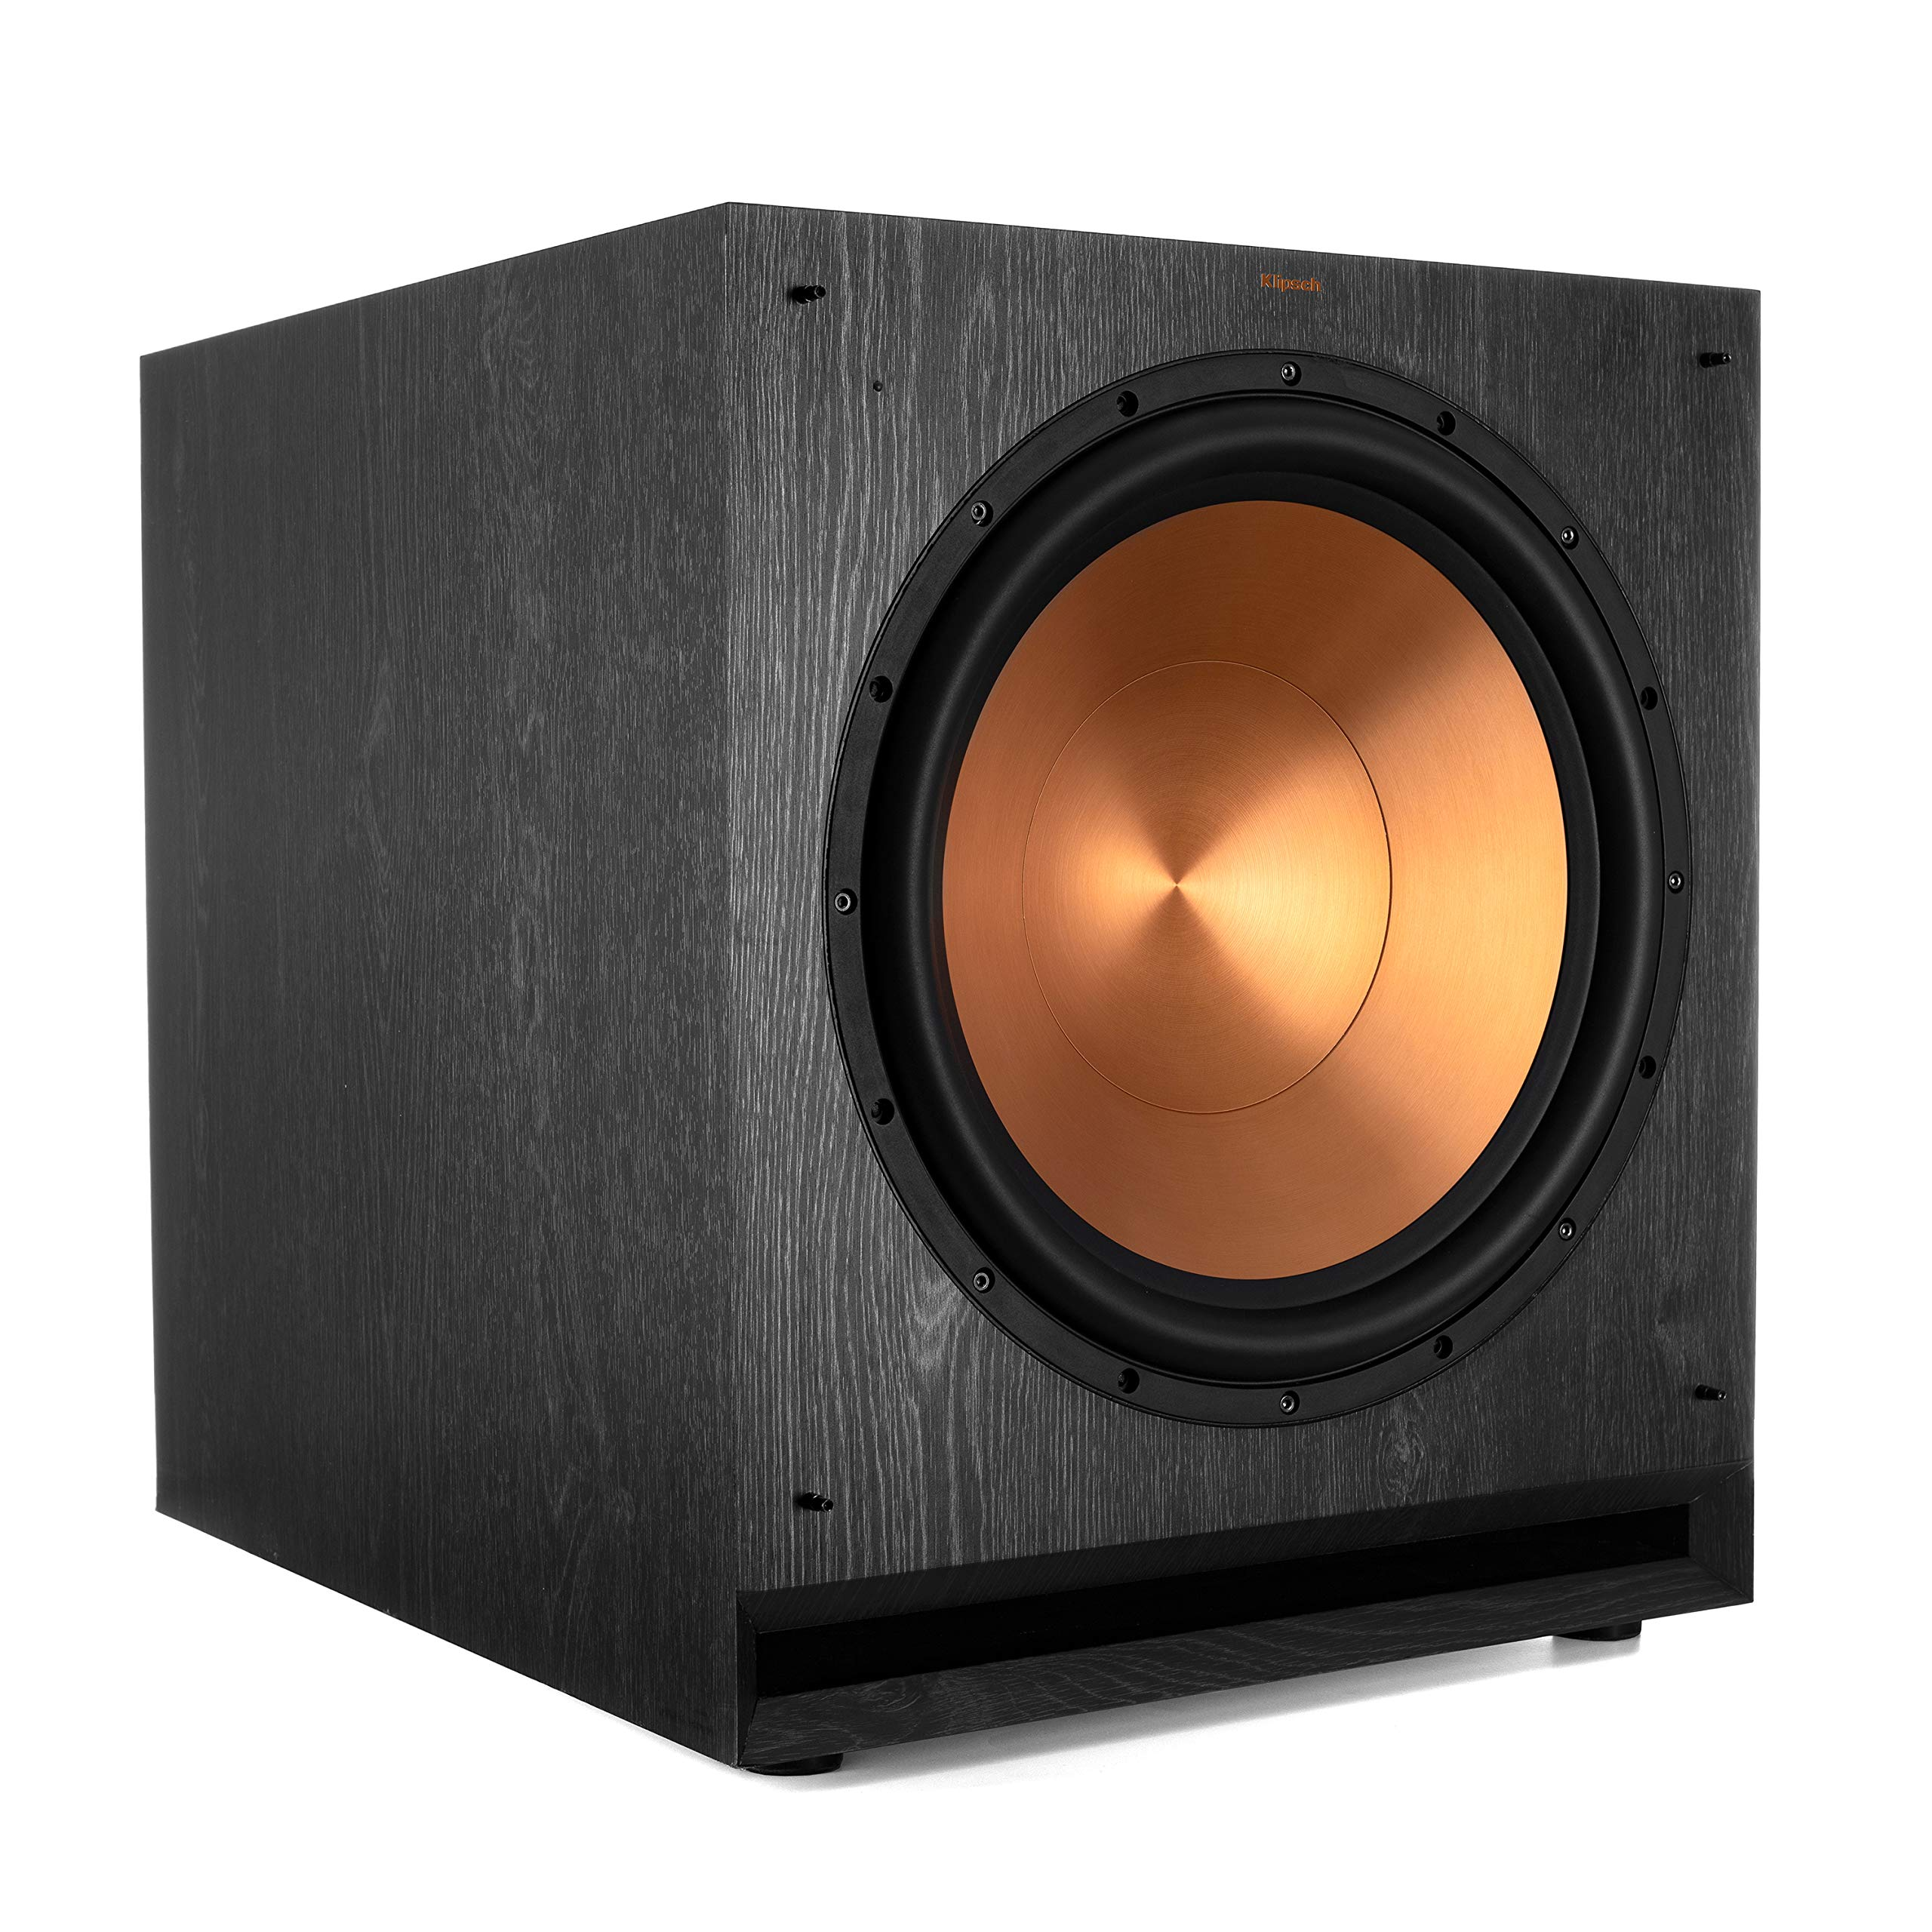 Klipsch SPL-150SW 15 Inch Powered Subwoofer, Ebony